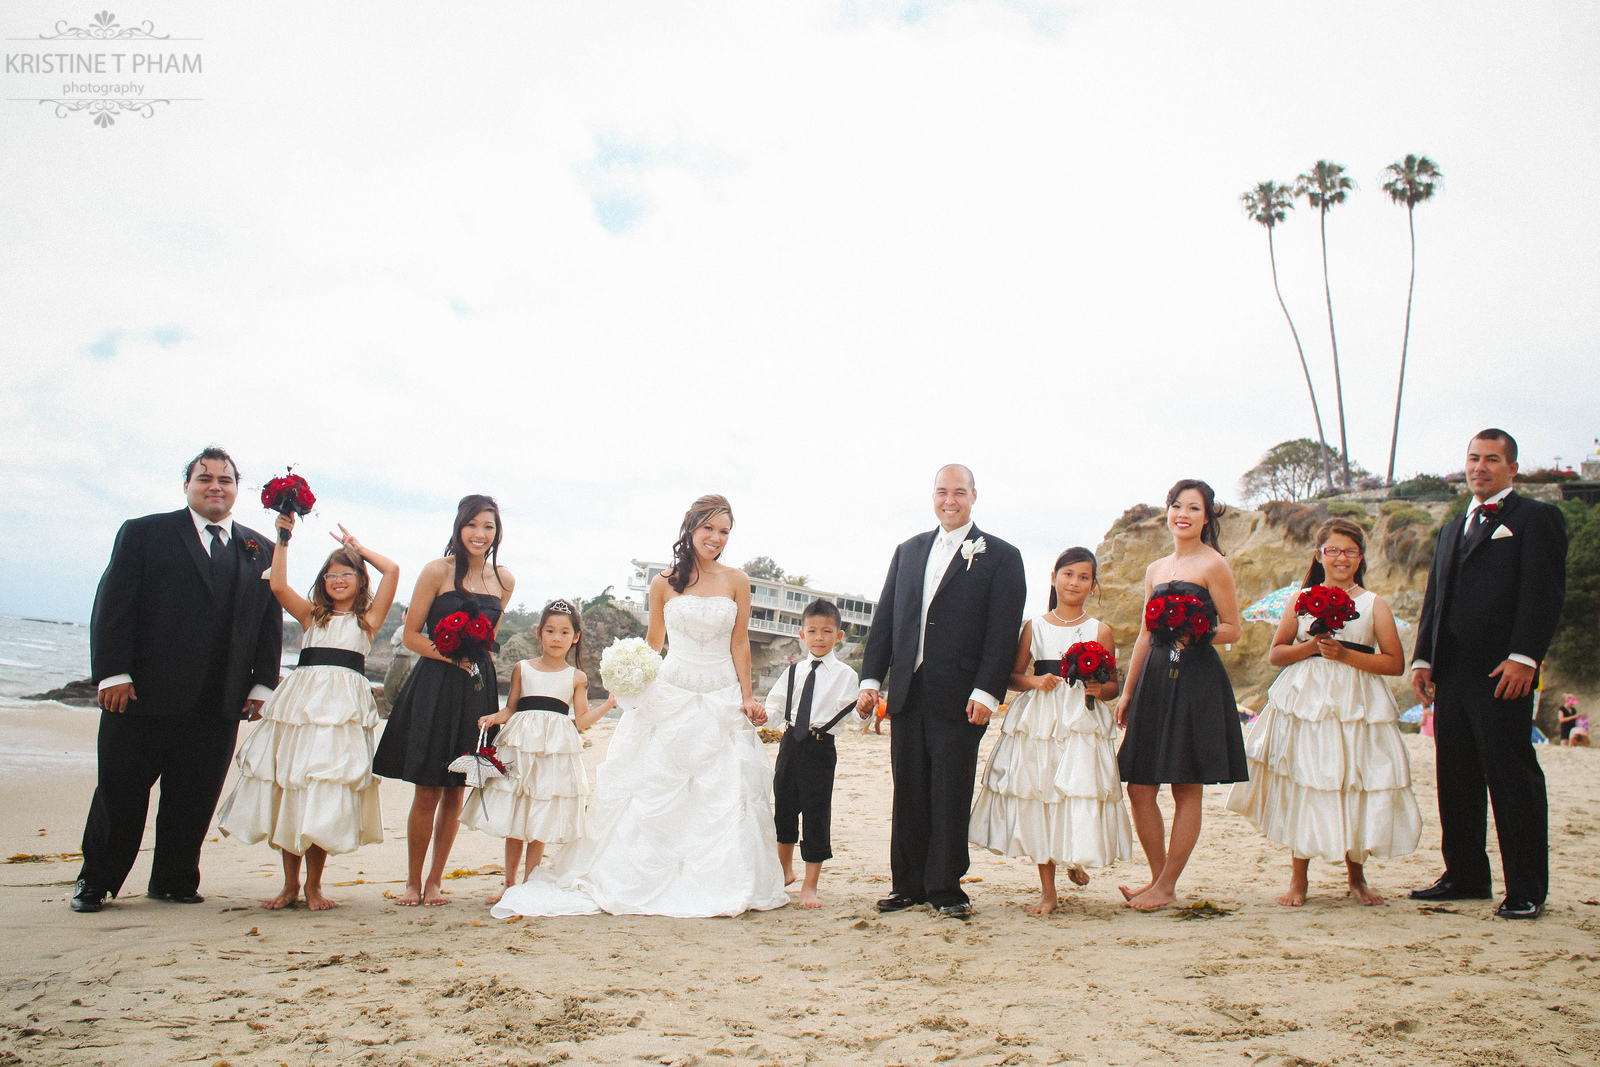 CAROL & CHRIS' ORANGE COUNTY WEDDING